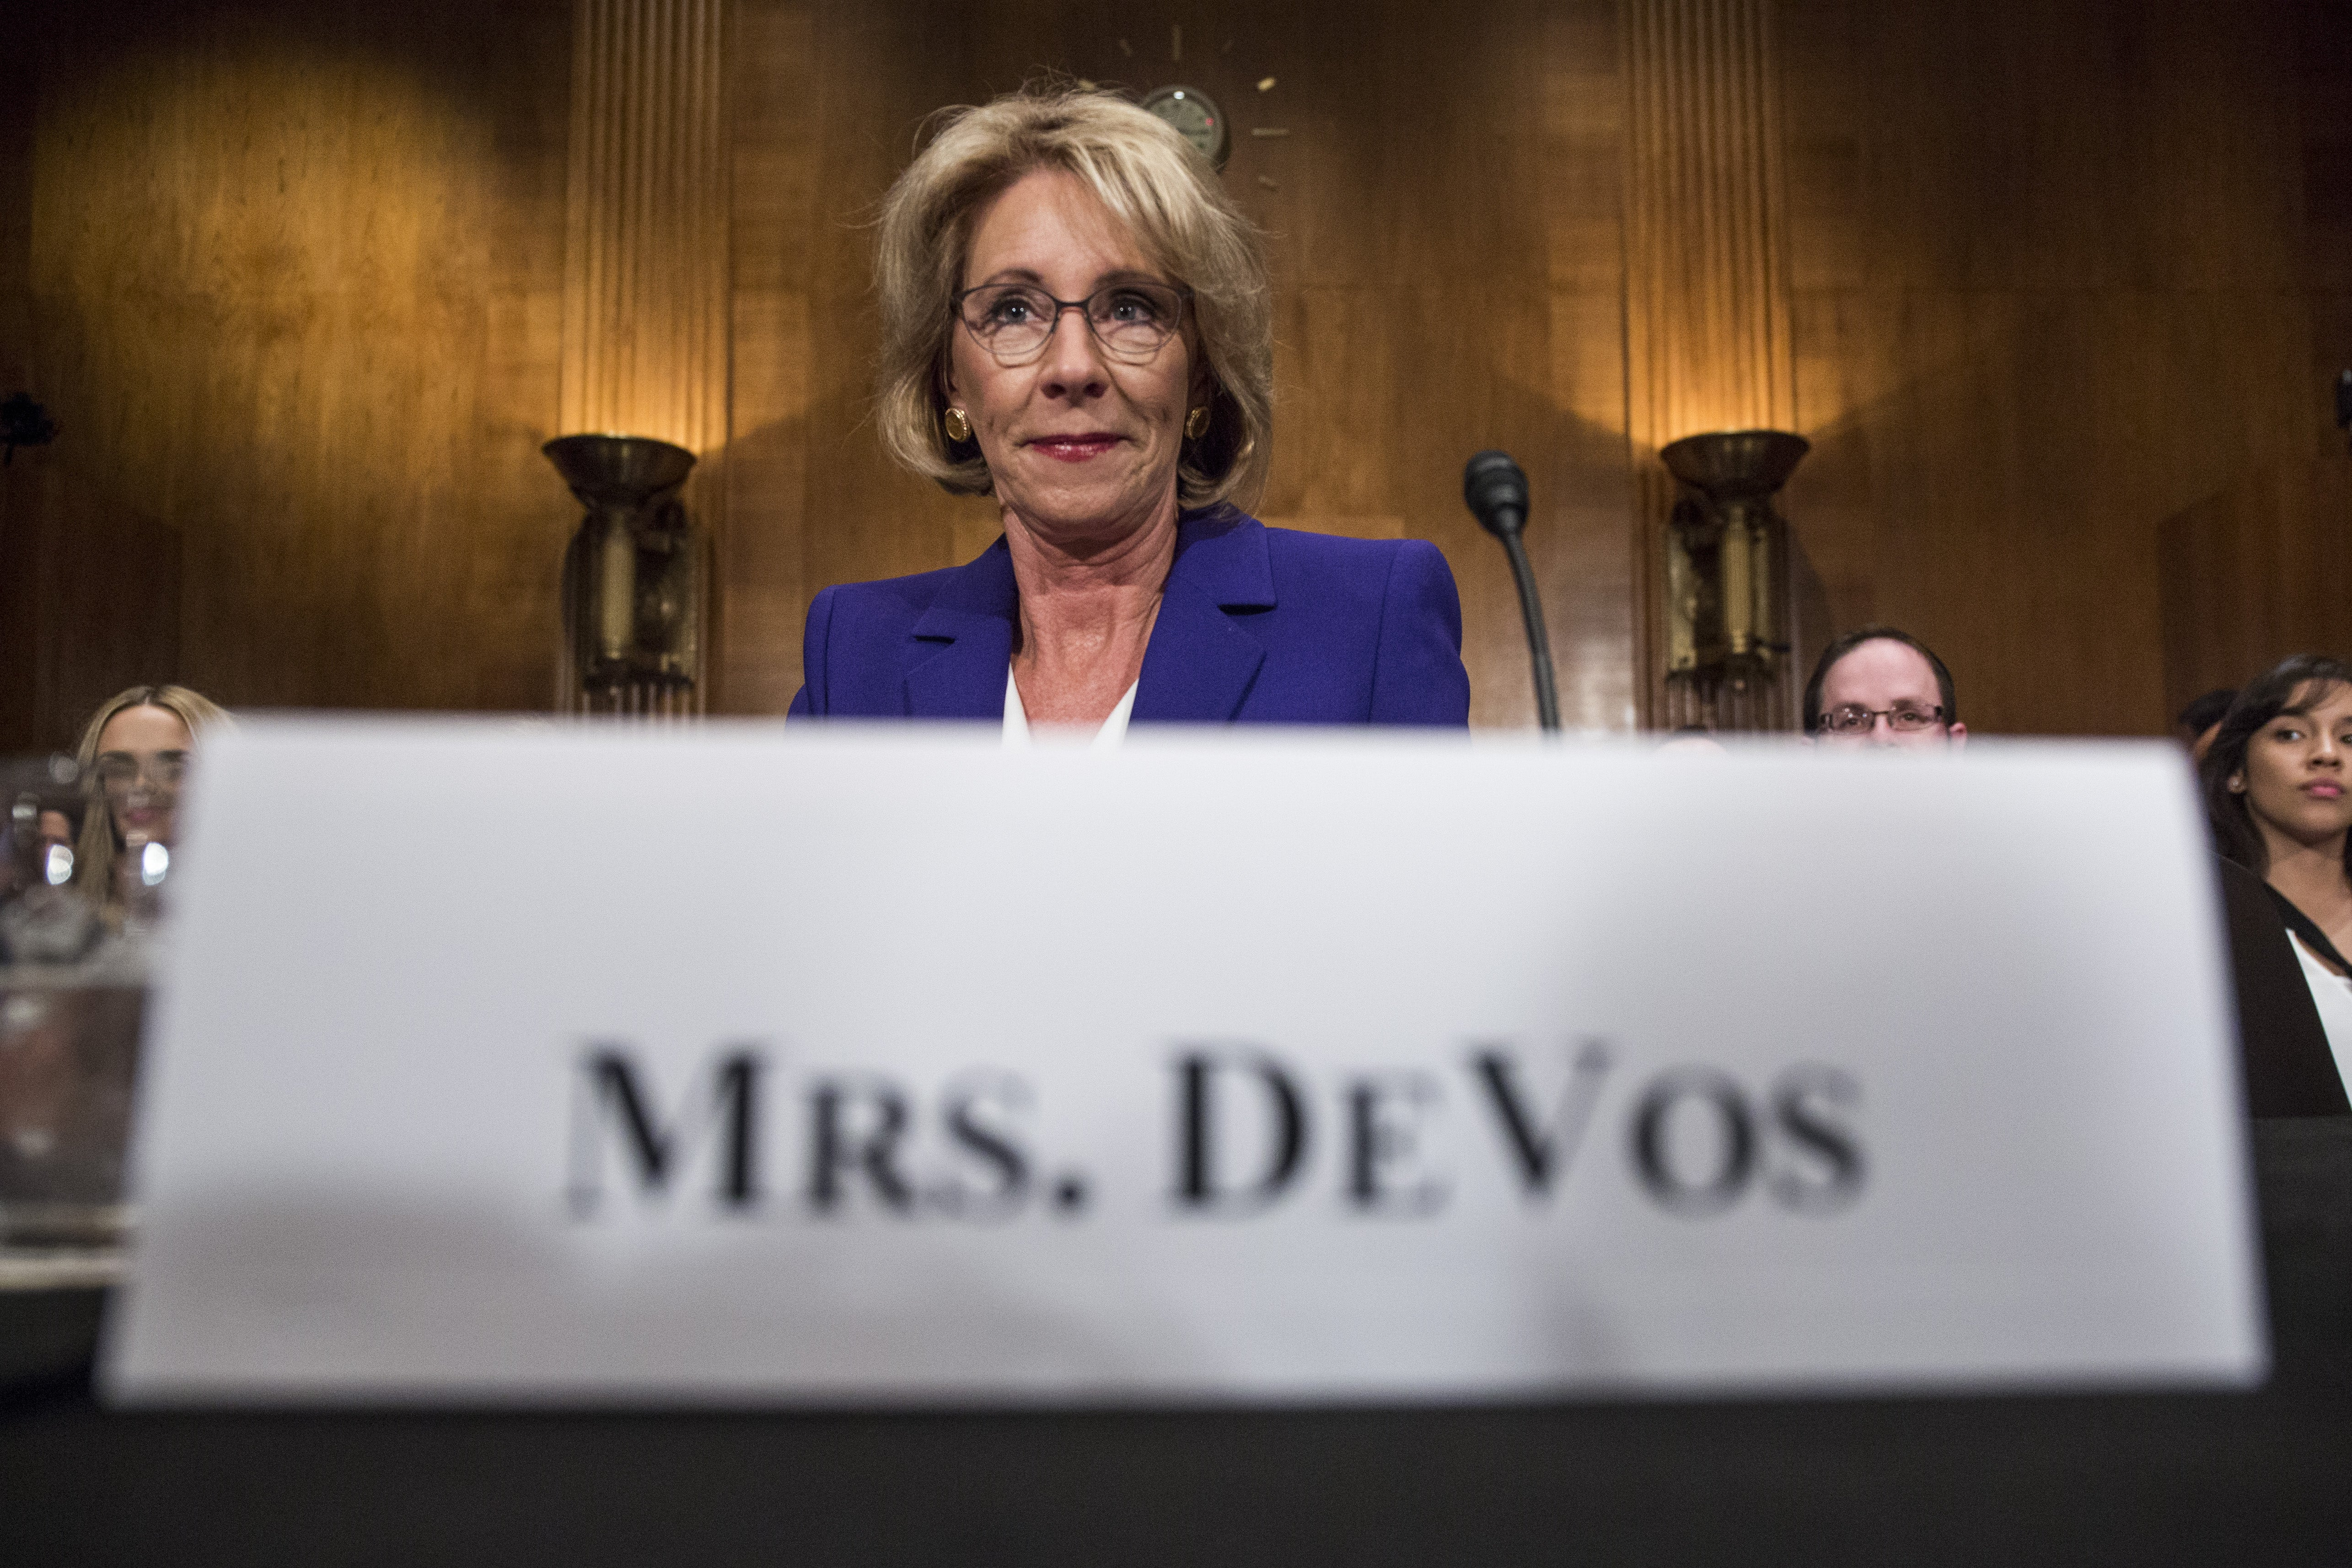 If Confirmed Betsy Devos Will Be >> Besty Devos Confirmation For Education Secretary A Threat To Black